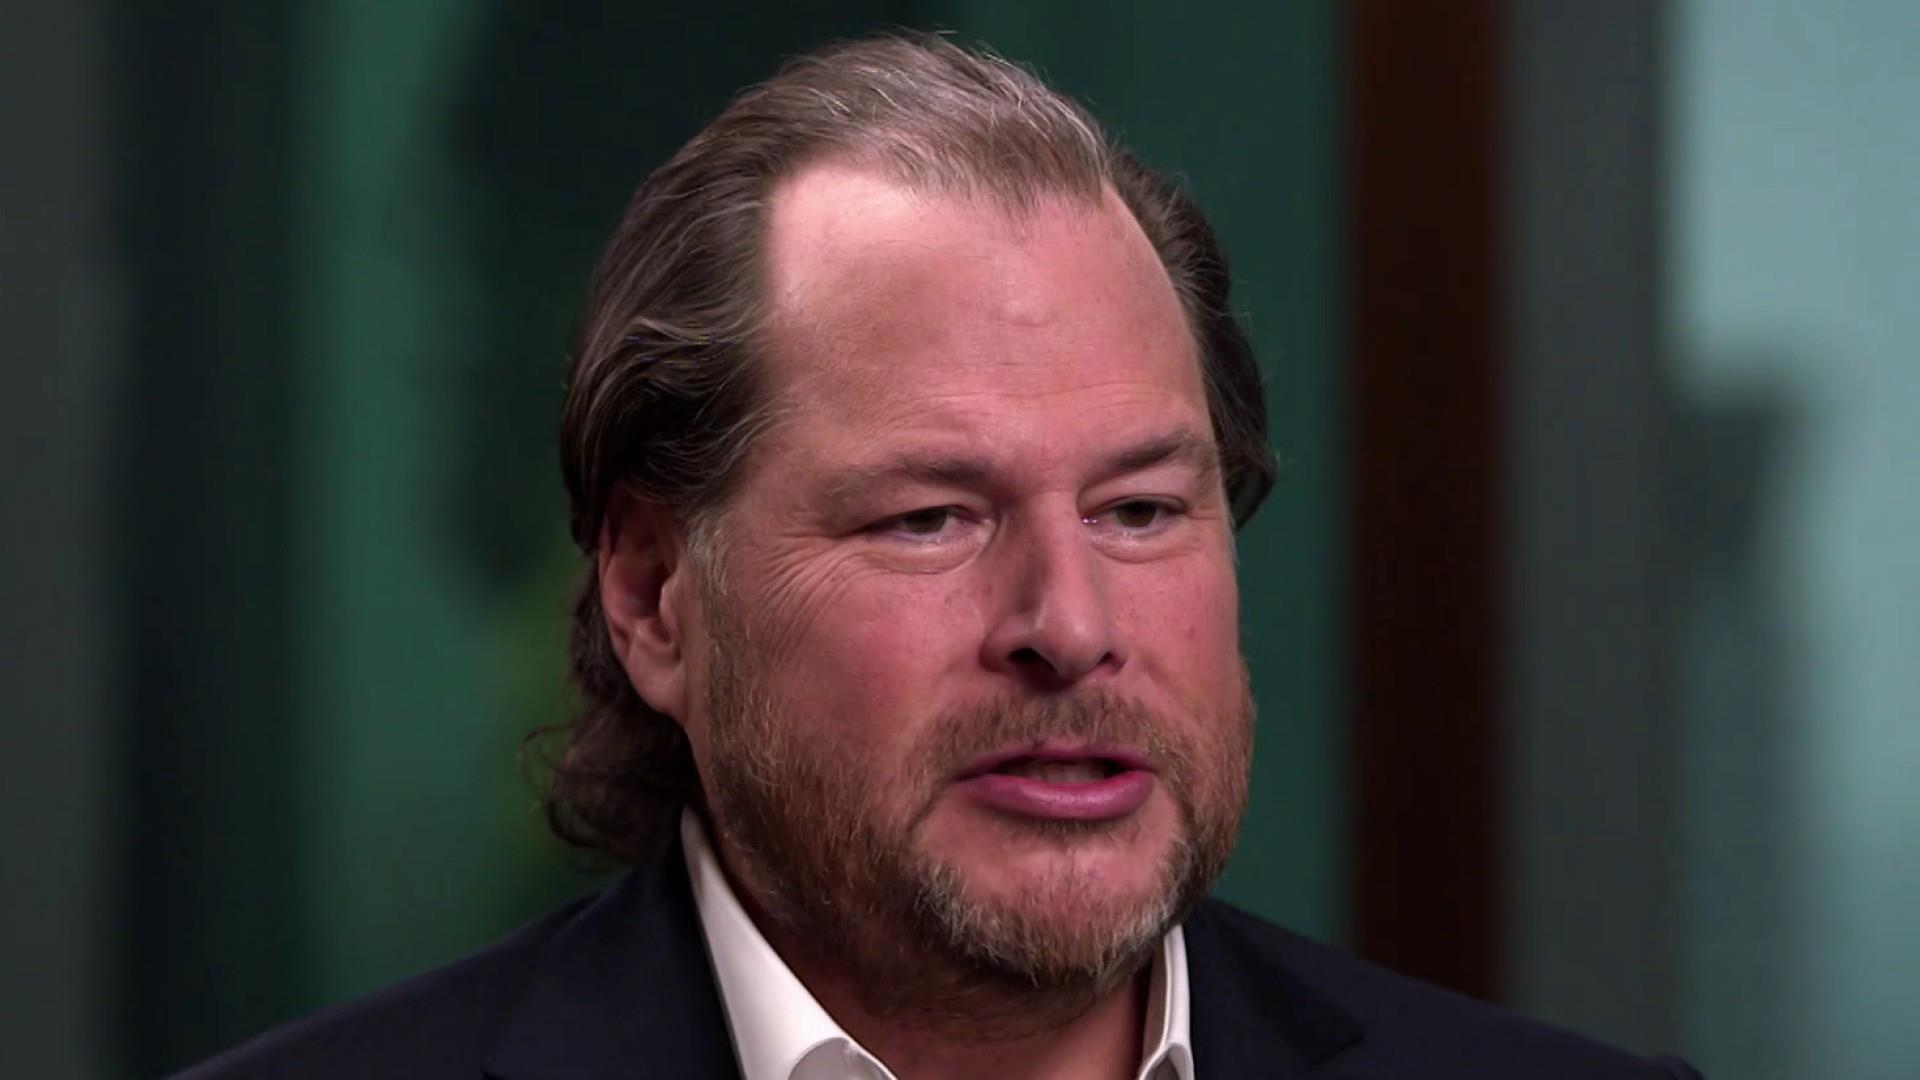 Salesforce CEO says it's time to hold Facebook accountable